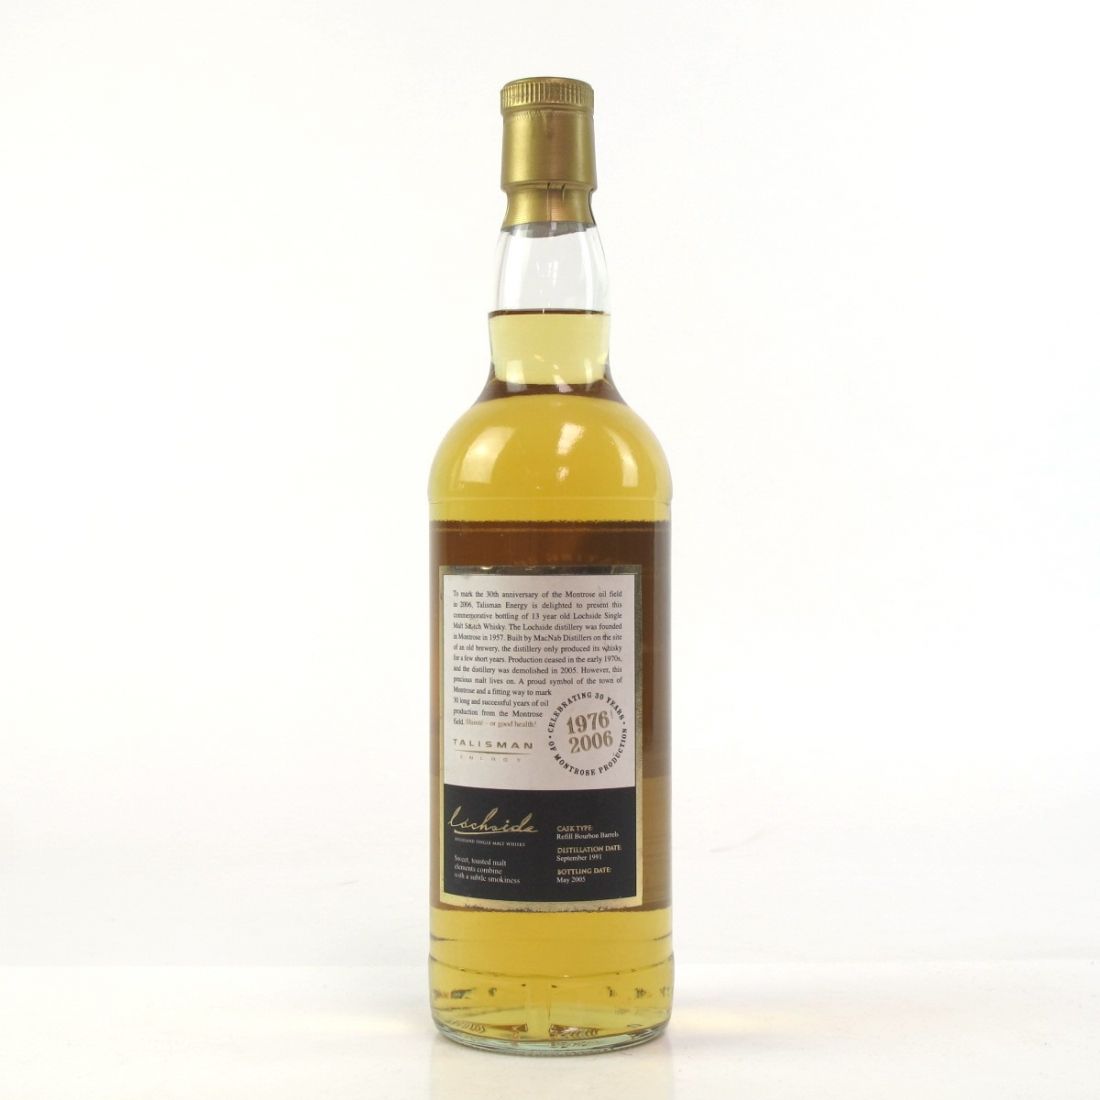 Lochside 1991 Gordon and MacPhail 14 Year Old